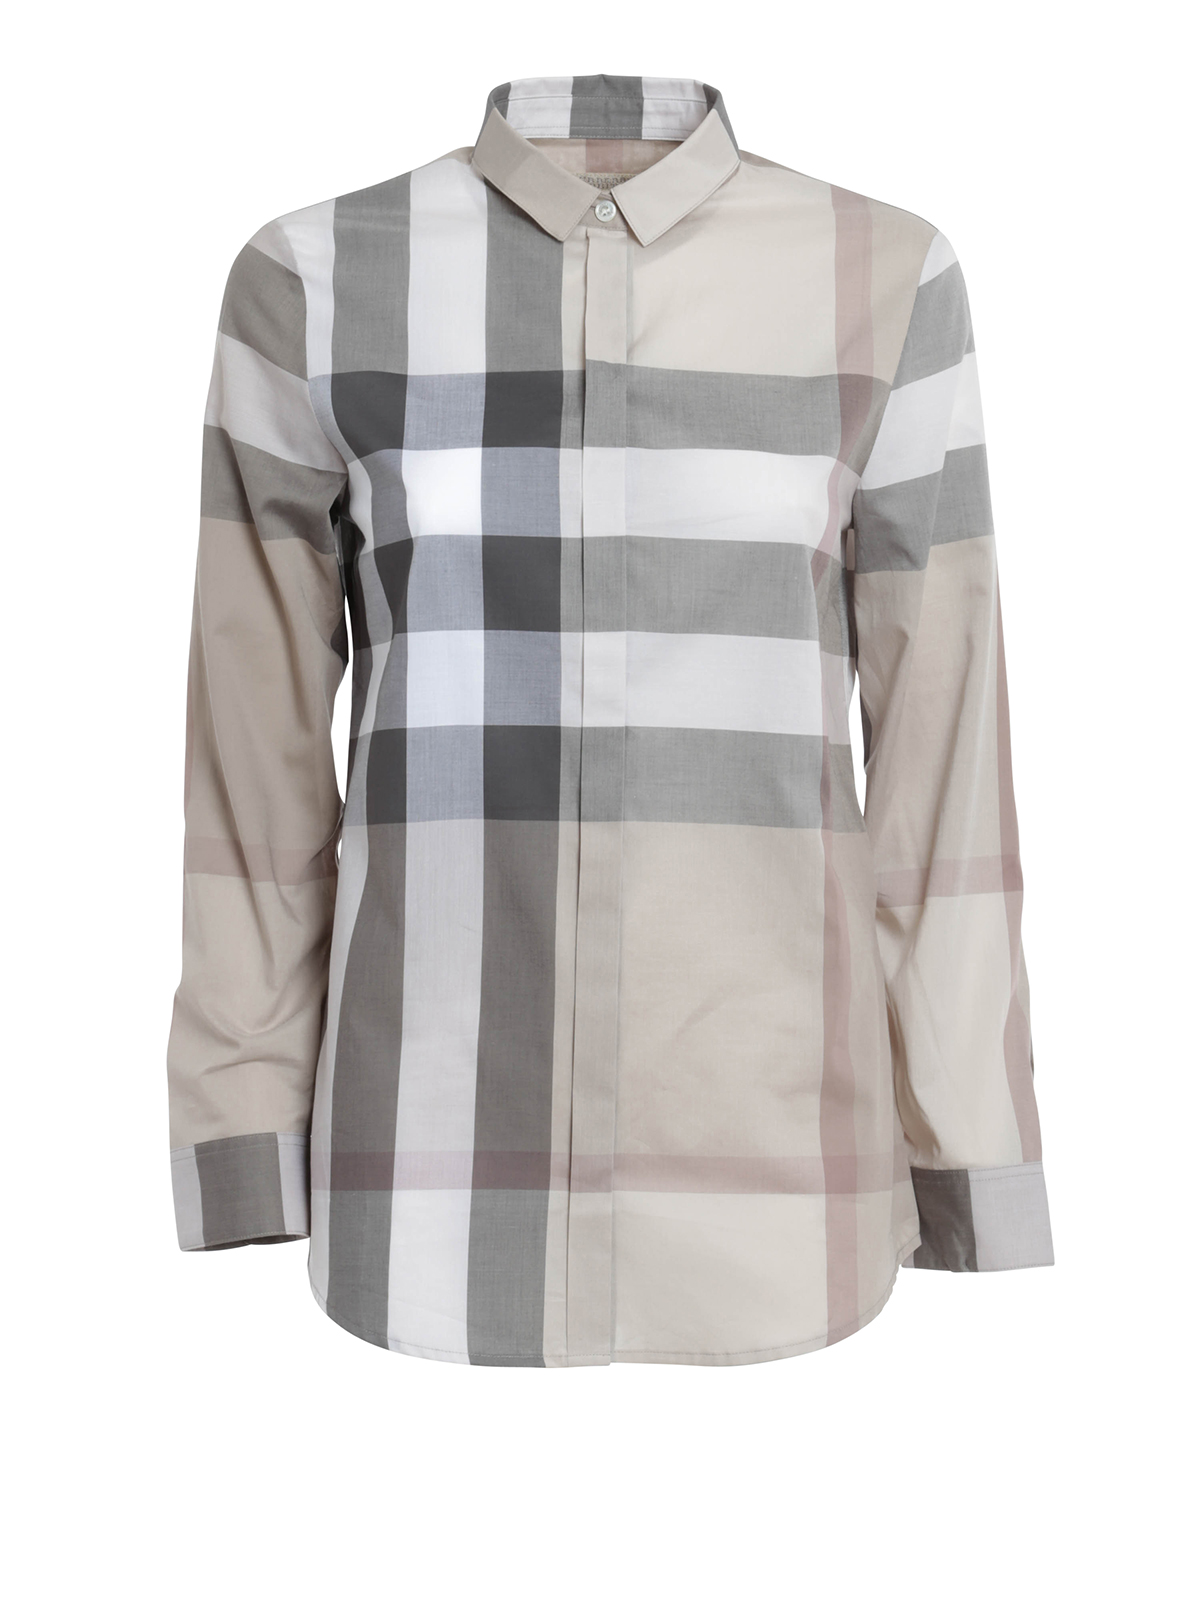 Check print shirt by burberry brit shirts ikrix for Where are burberry shirts made